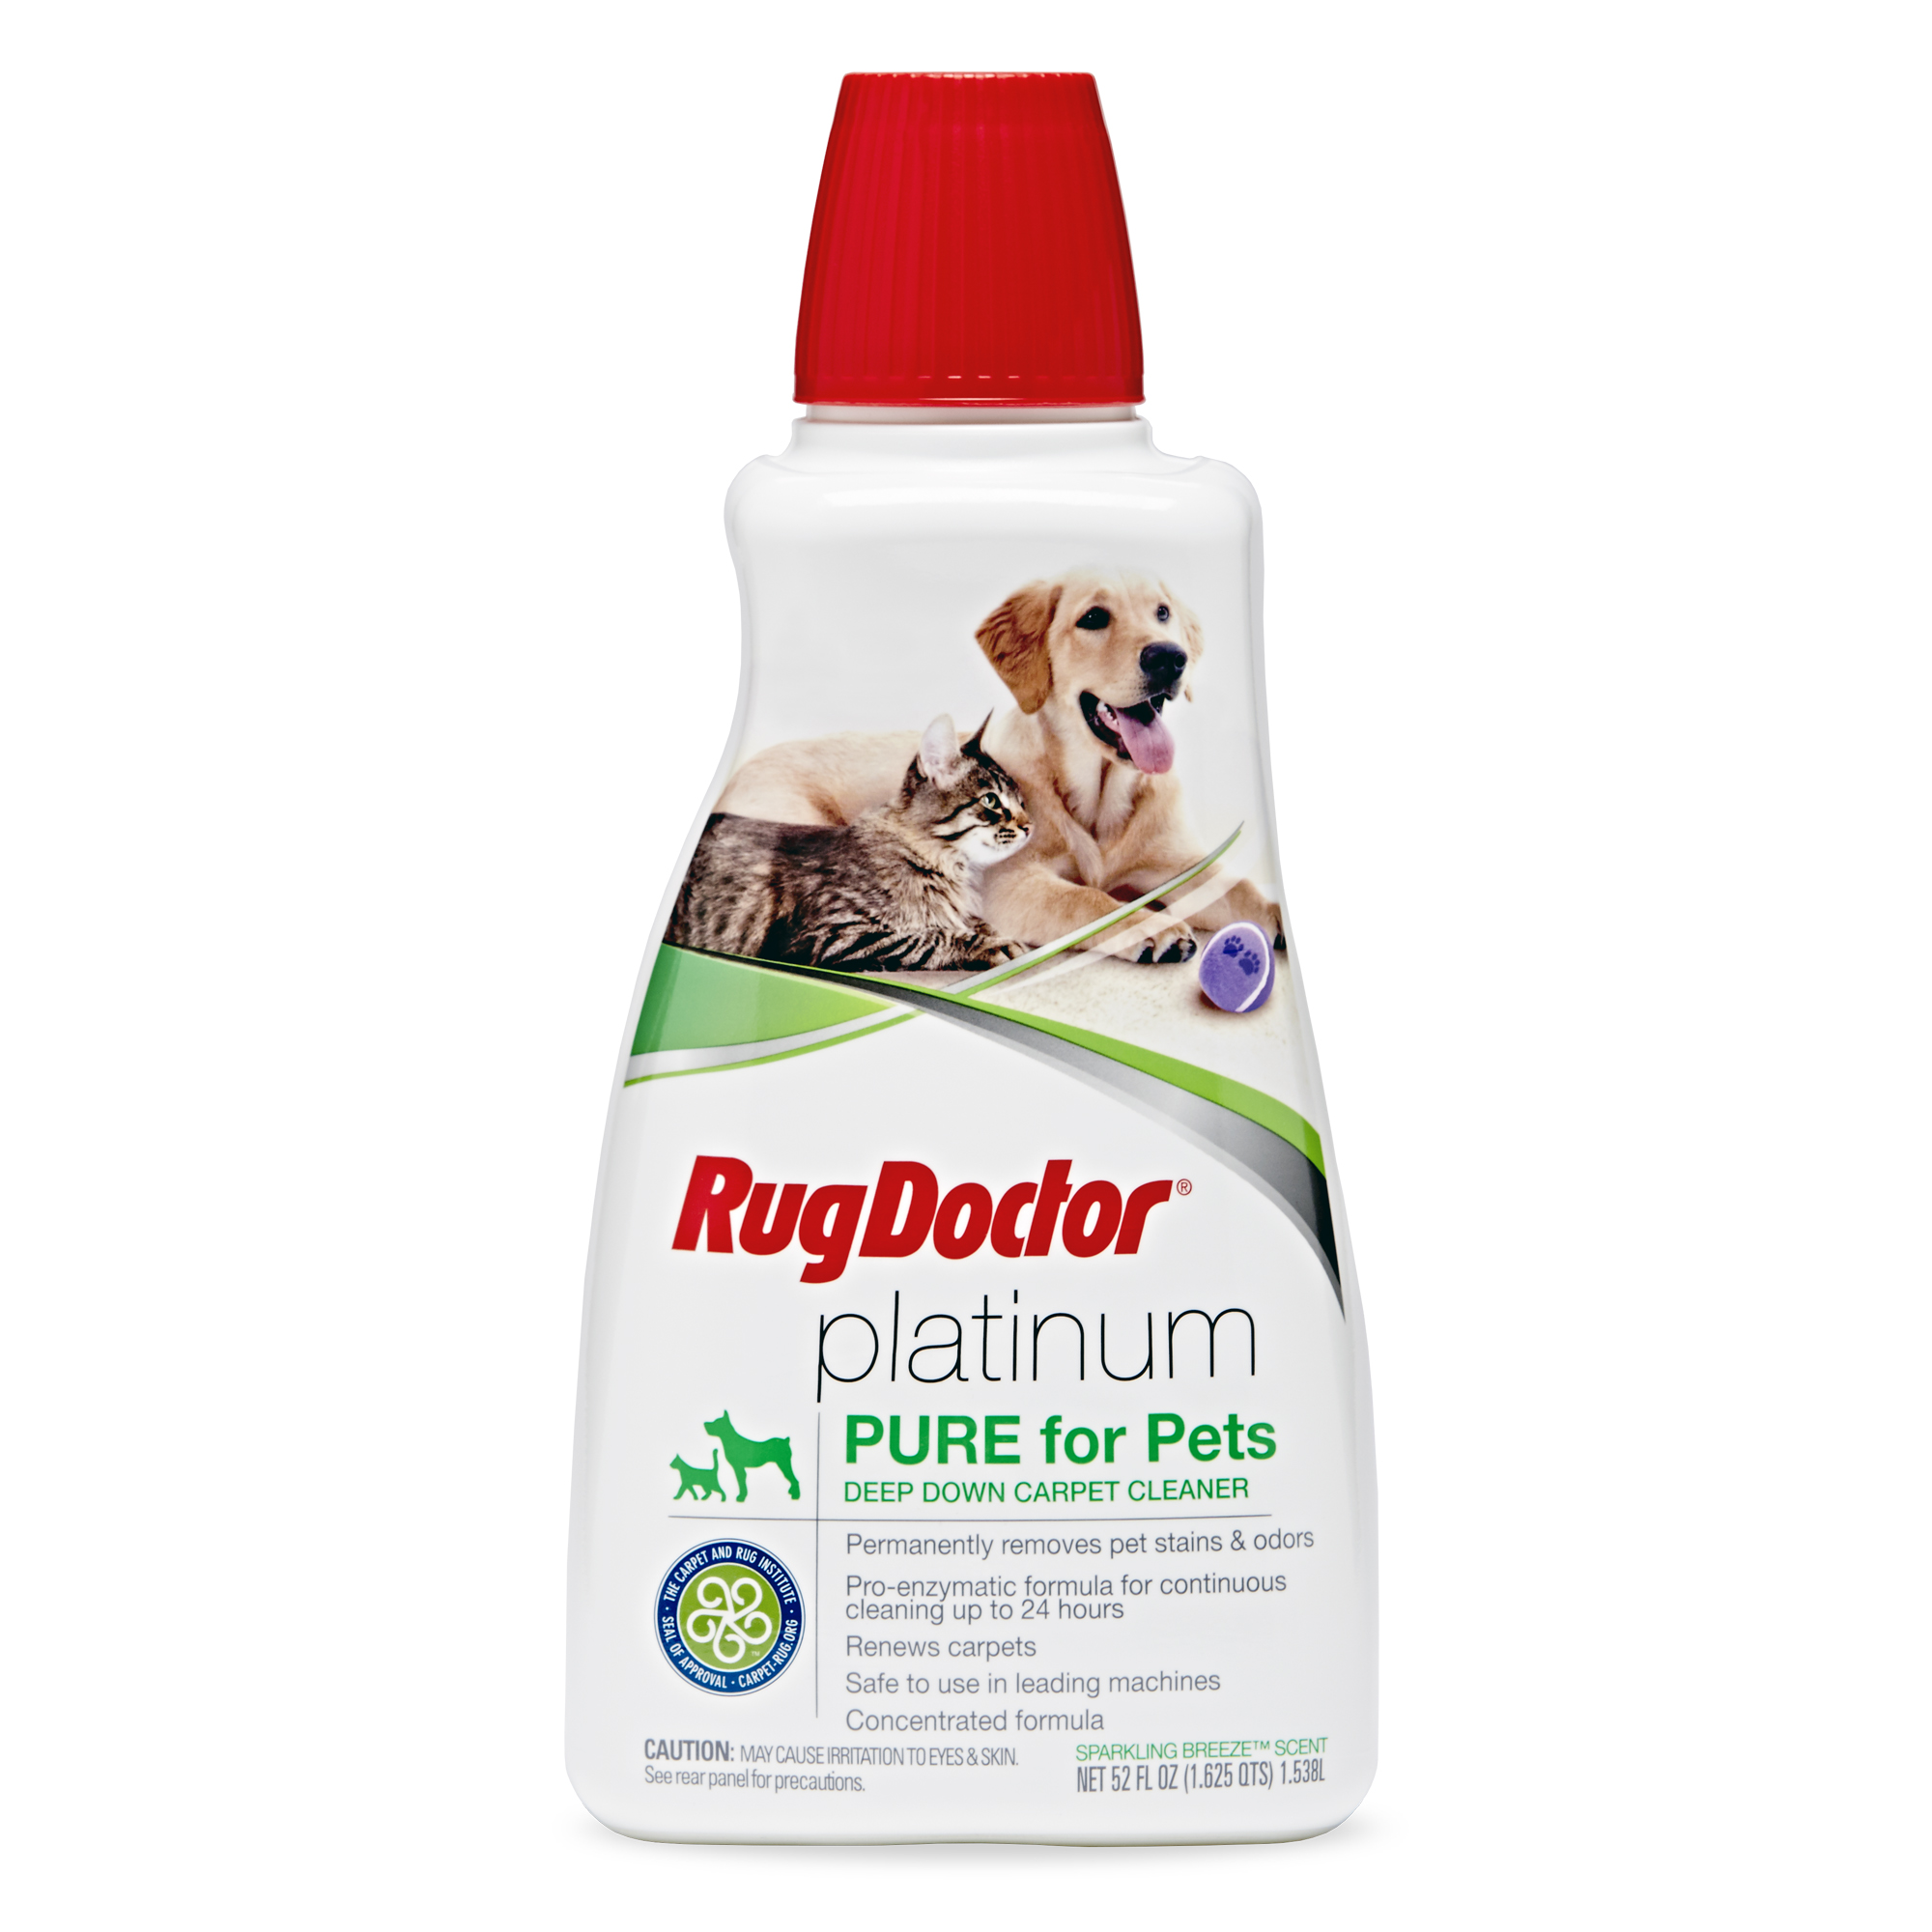 Rug Doctor Platinum PURE Pet Deep Carpet Cleaner; Powerful Formula Permanently Removes Pet Stains and Lingering Odors, Renews Carpets and Deters Remarking; Refreshing Sparkling Breeze Scent; 52 oz.